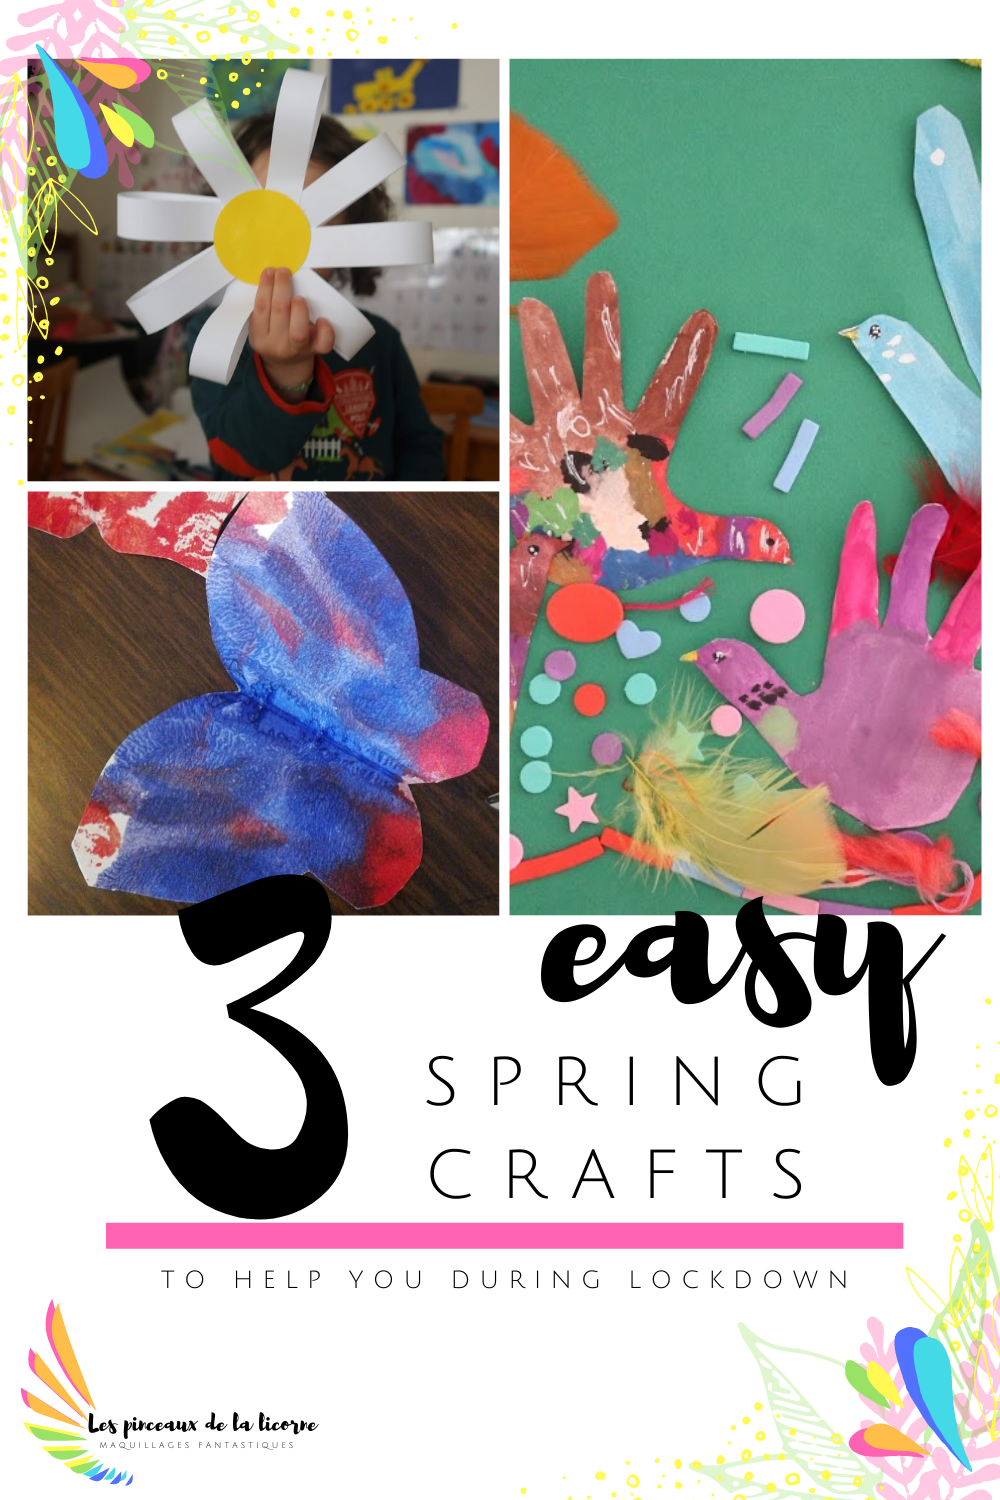 Three 3 easy spring crafts